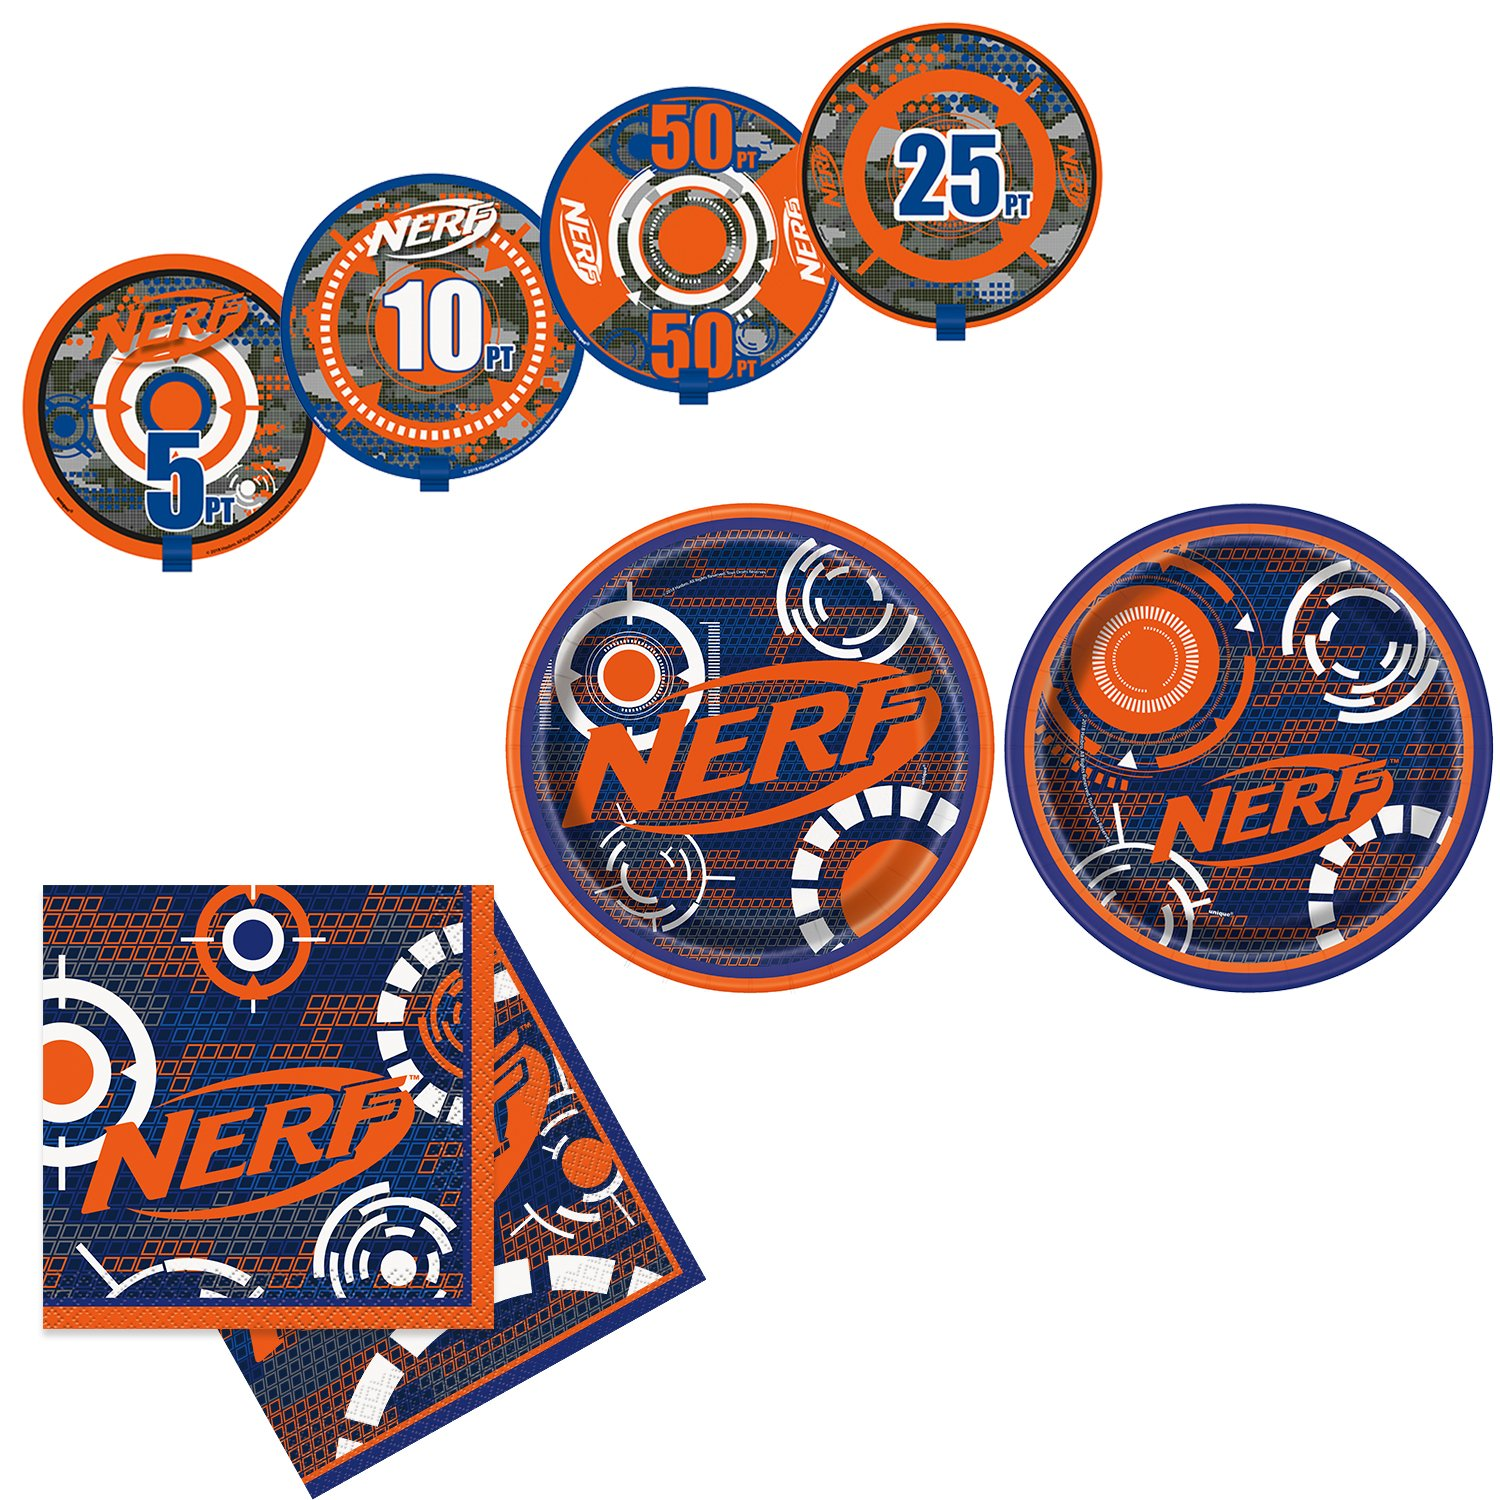 Unique Nerf Party Bundle | Beverage & Luncheon Napkins, Dinner & Dessert Plates, Bull's Eye Decoration | Great for Interactive Sports Birthday Themed Parties